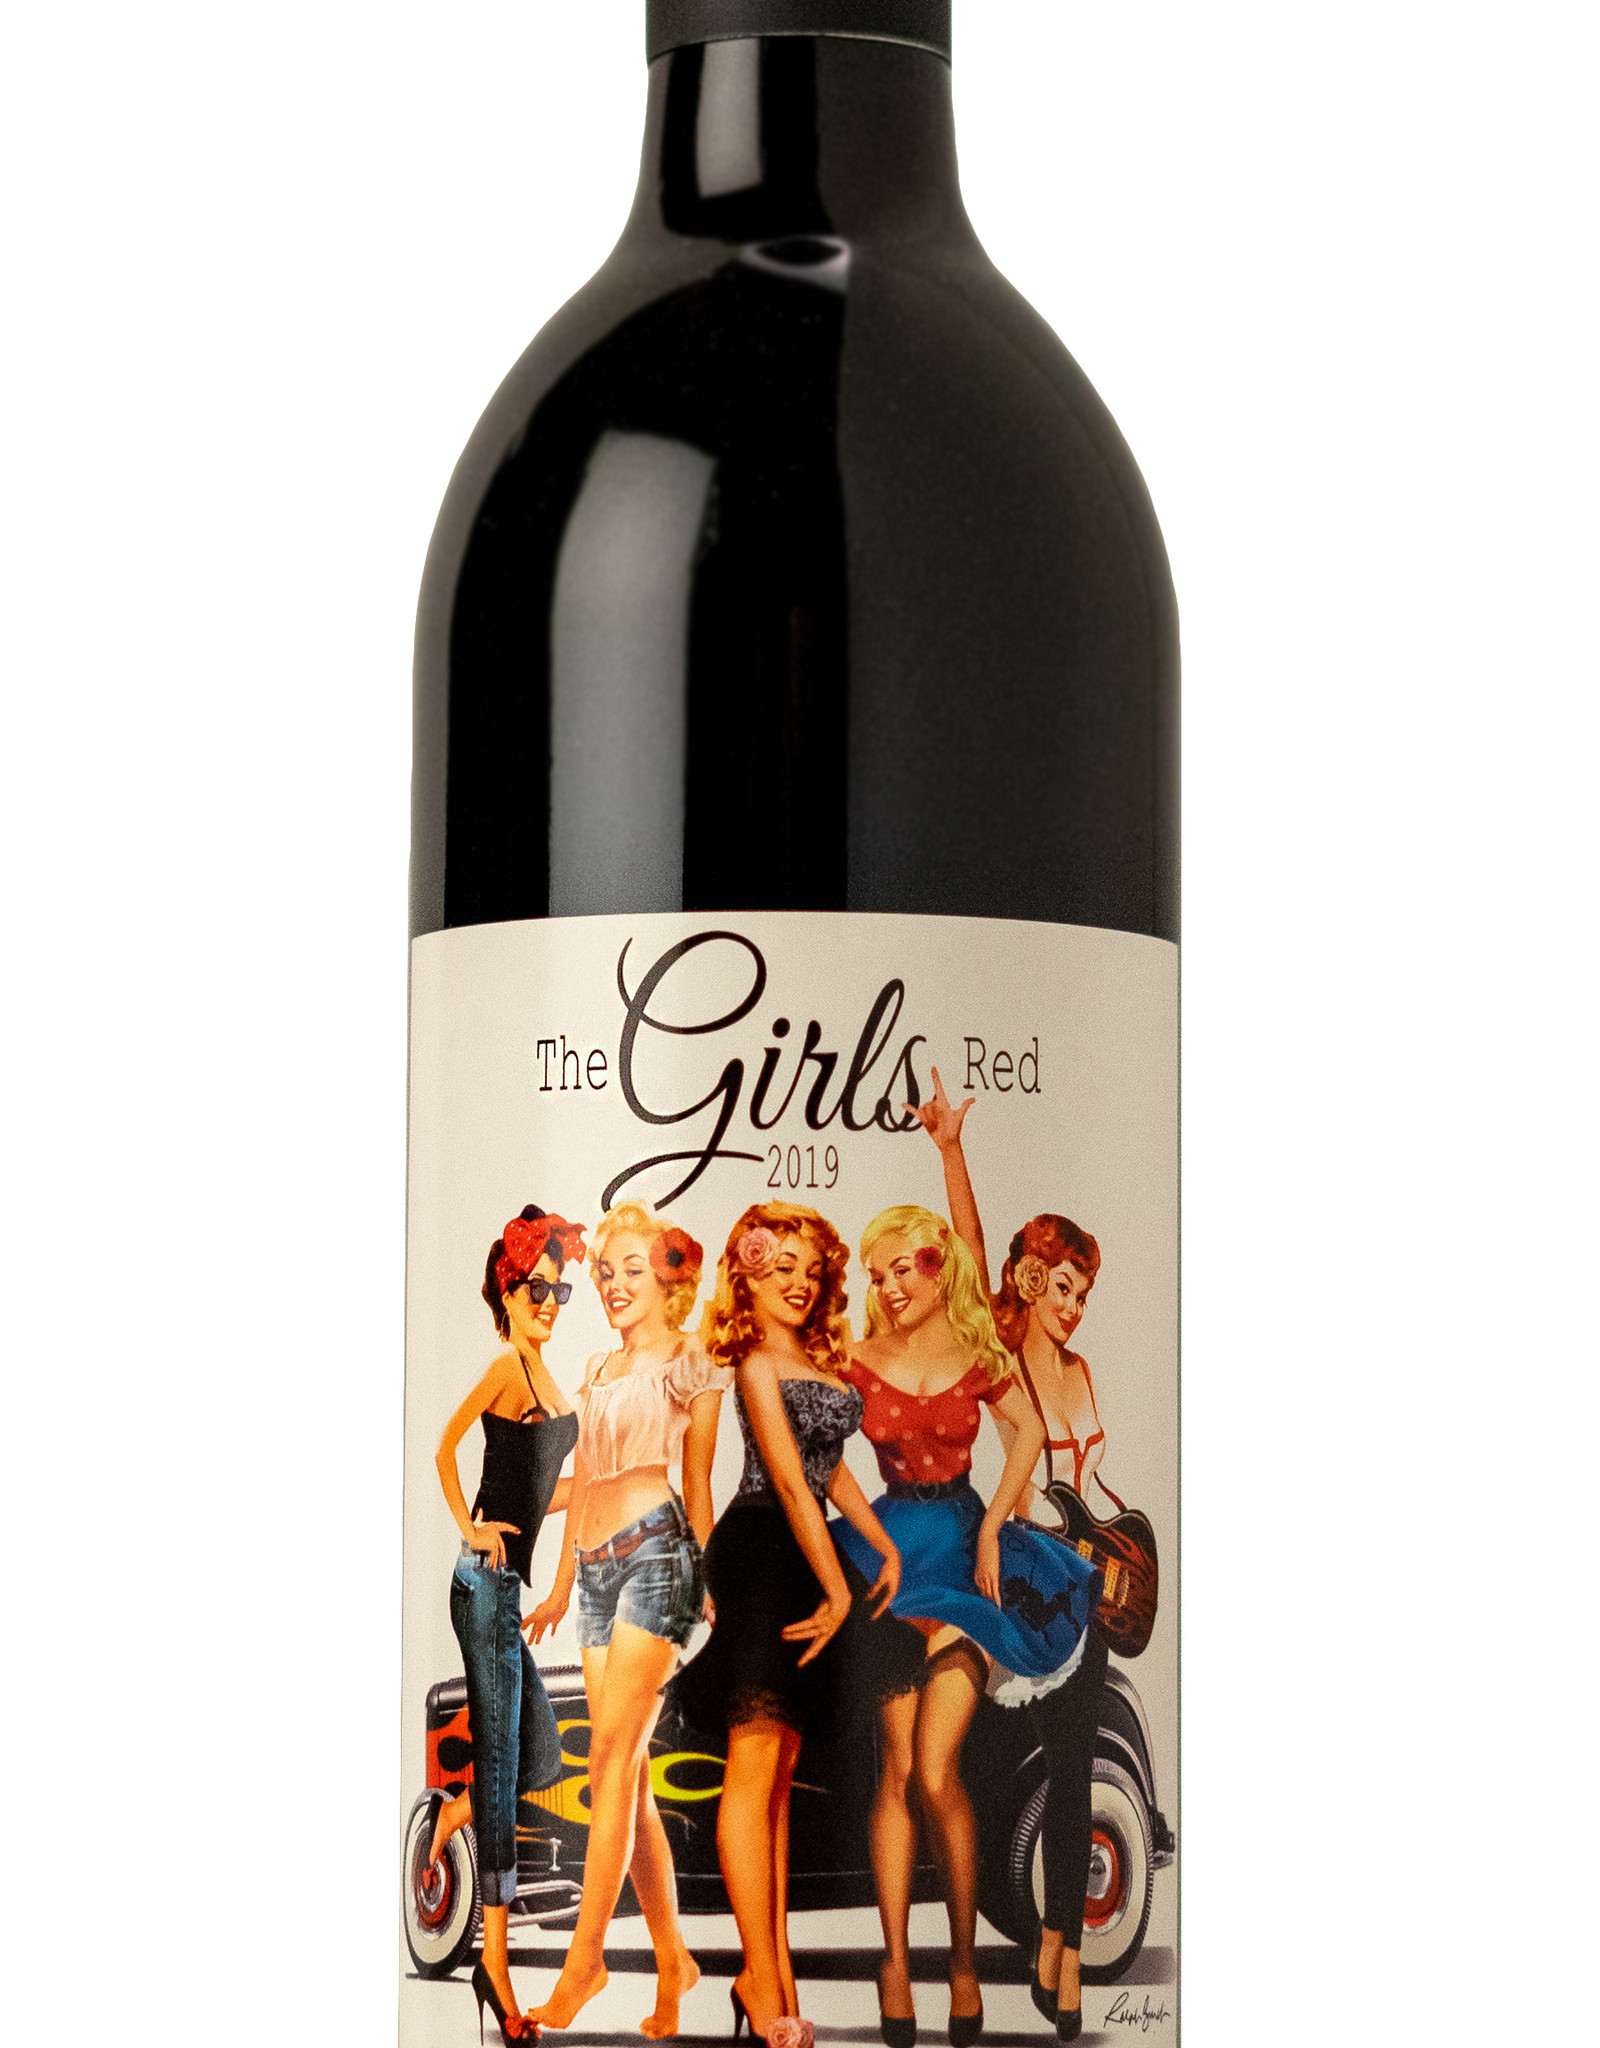 Oliver Twist 2019 The Girls Red  750ml